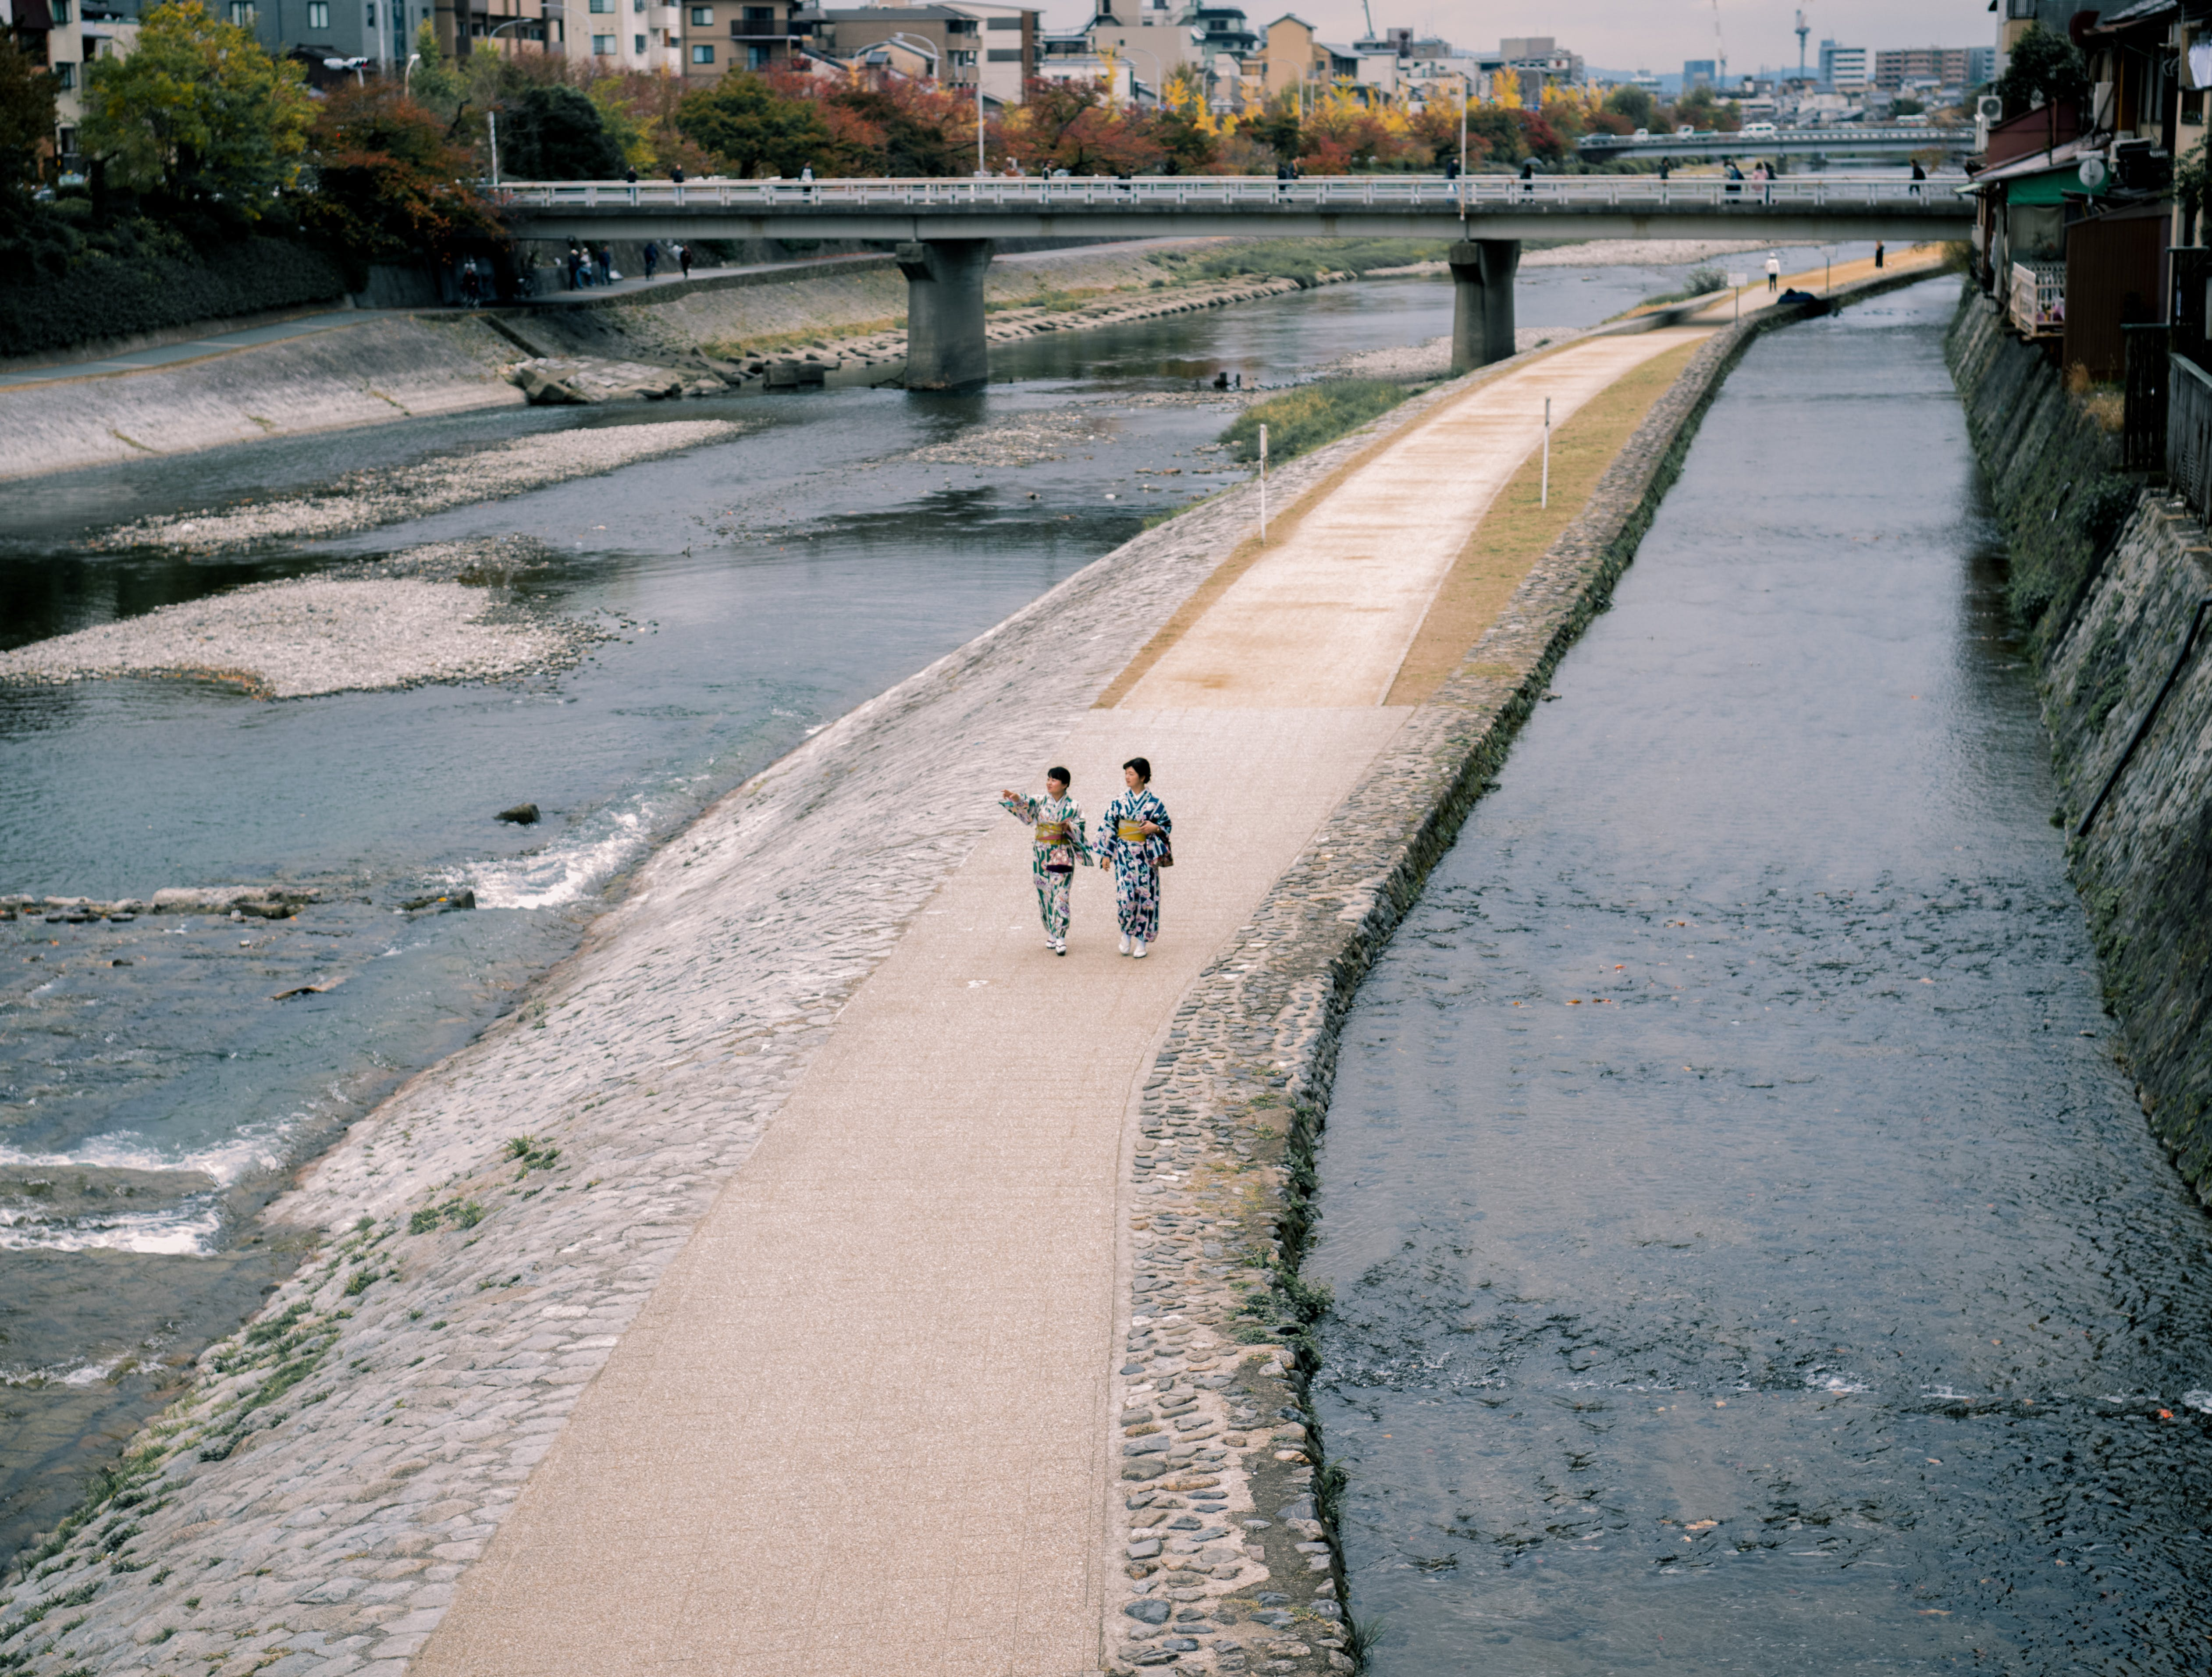 Aerial Photography of Two Women Walking on Pathway